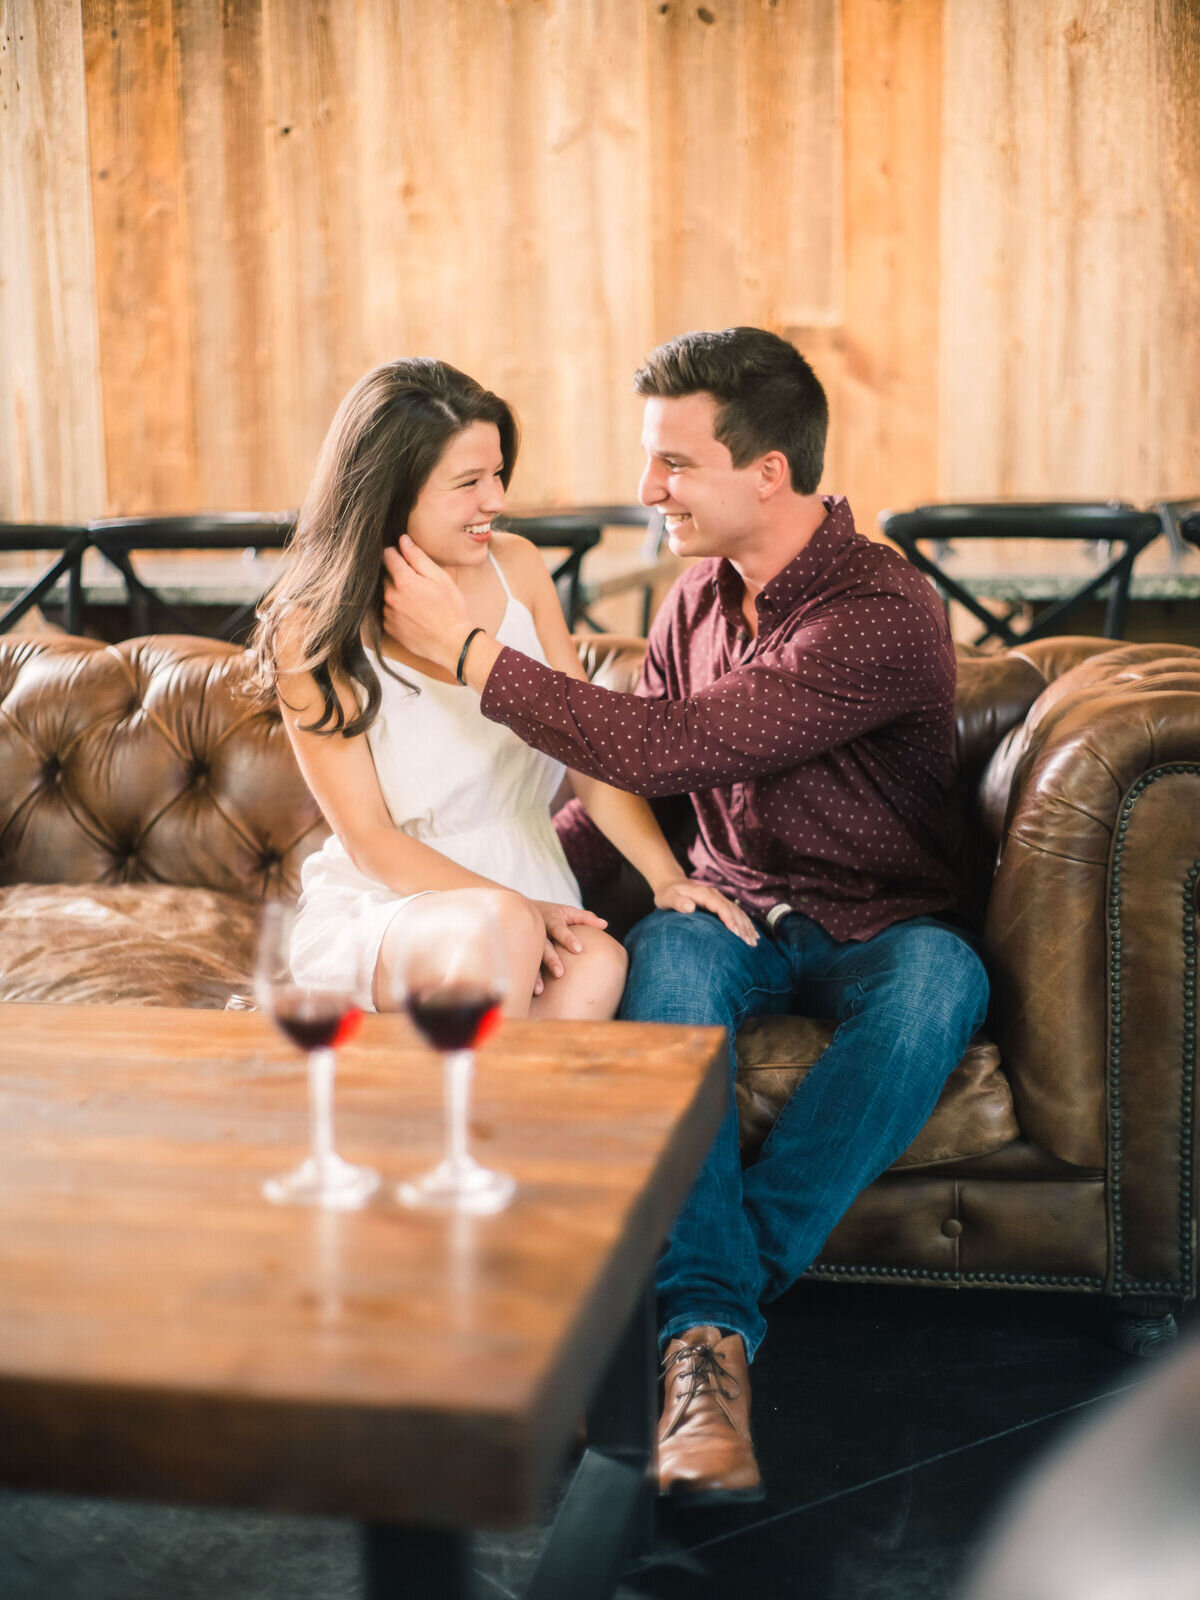 couple sitting on a couch with man reaching across to touch woman's face with wine in front of them smiling and laughing